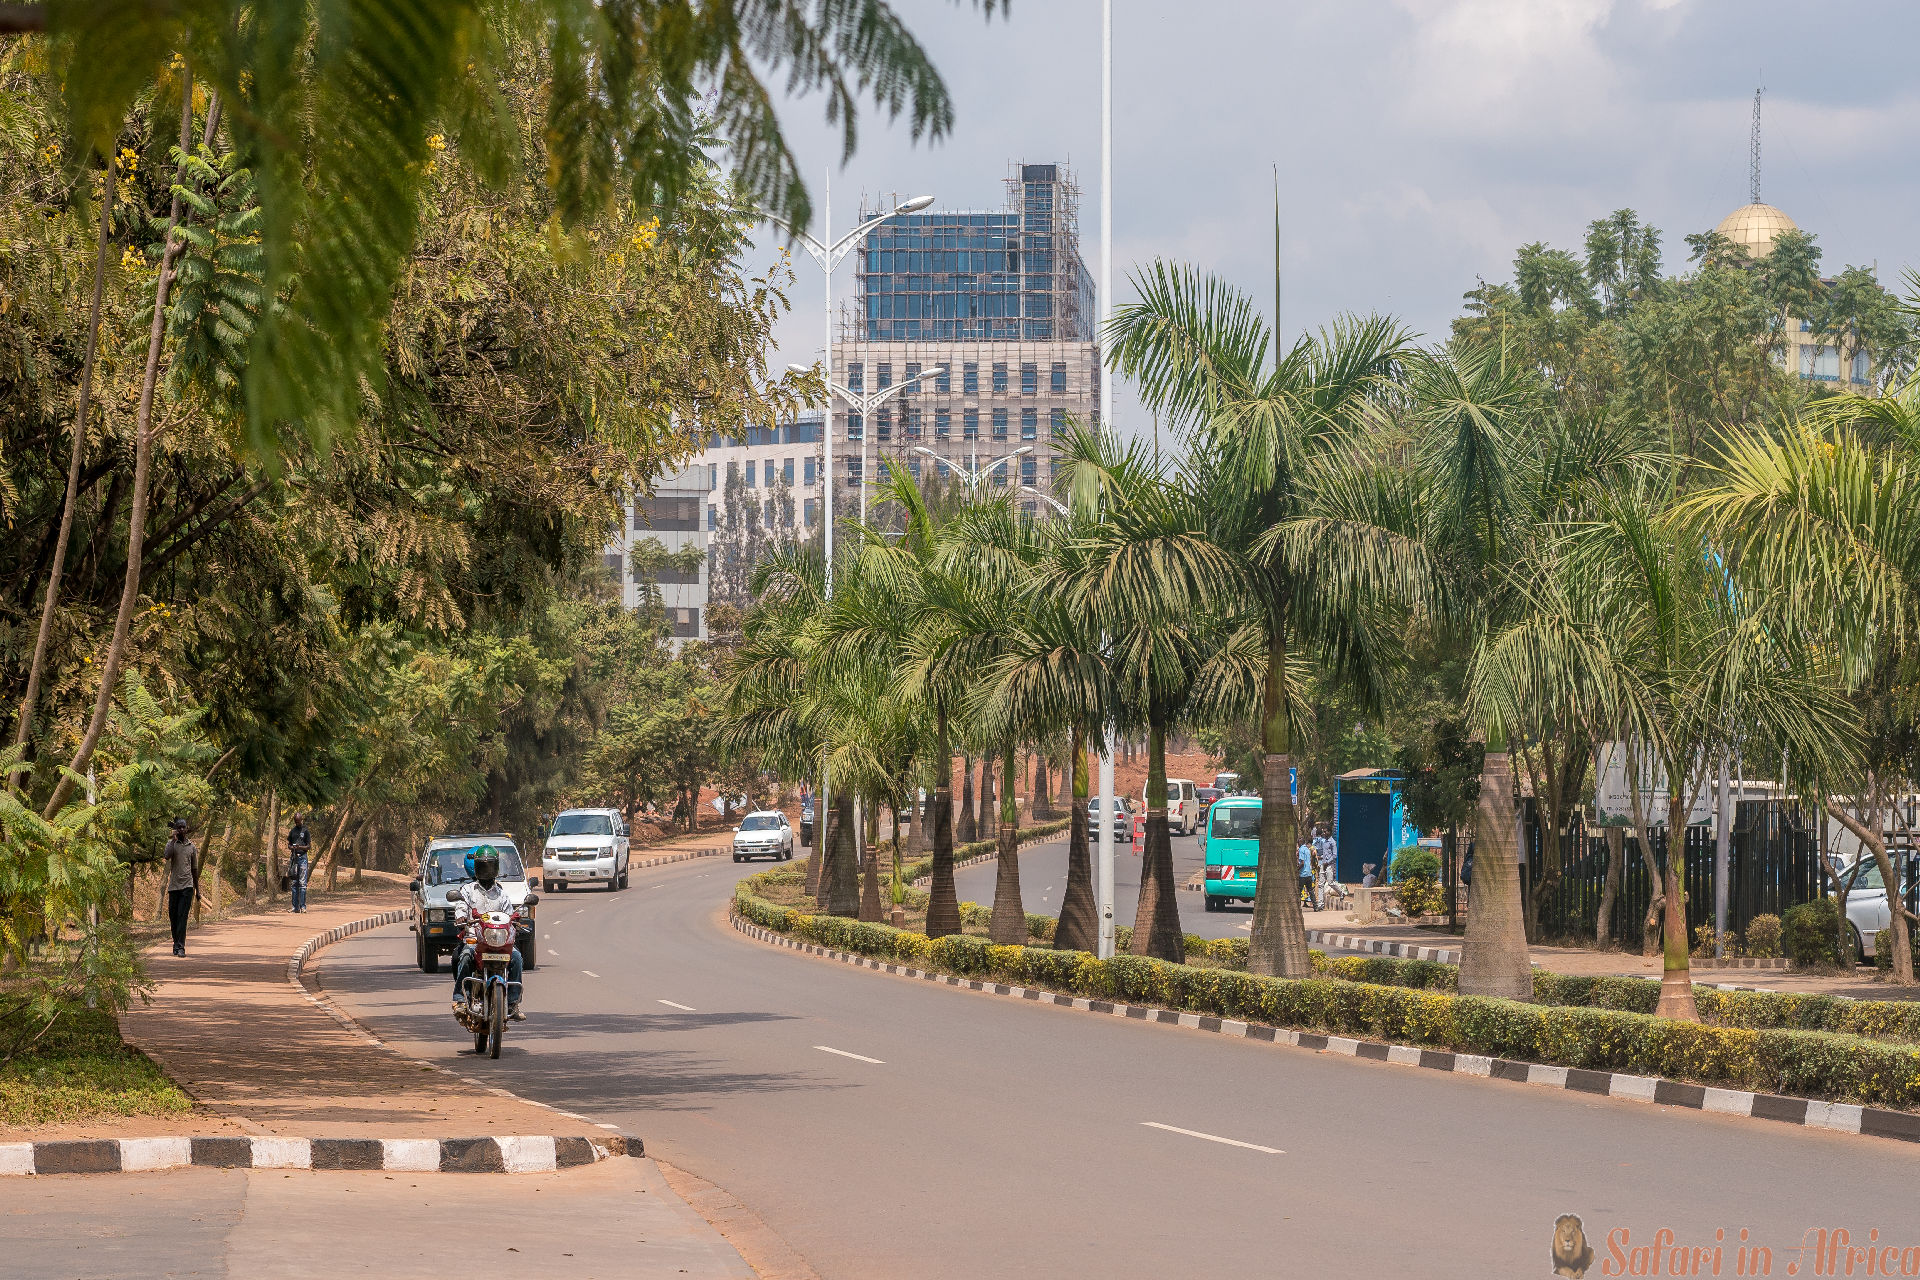 One of the cleanest cities in Africa, Kigali. Paved, urban